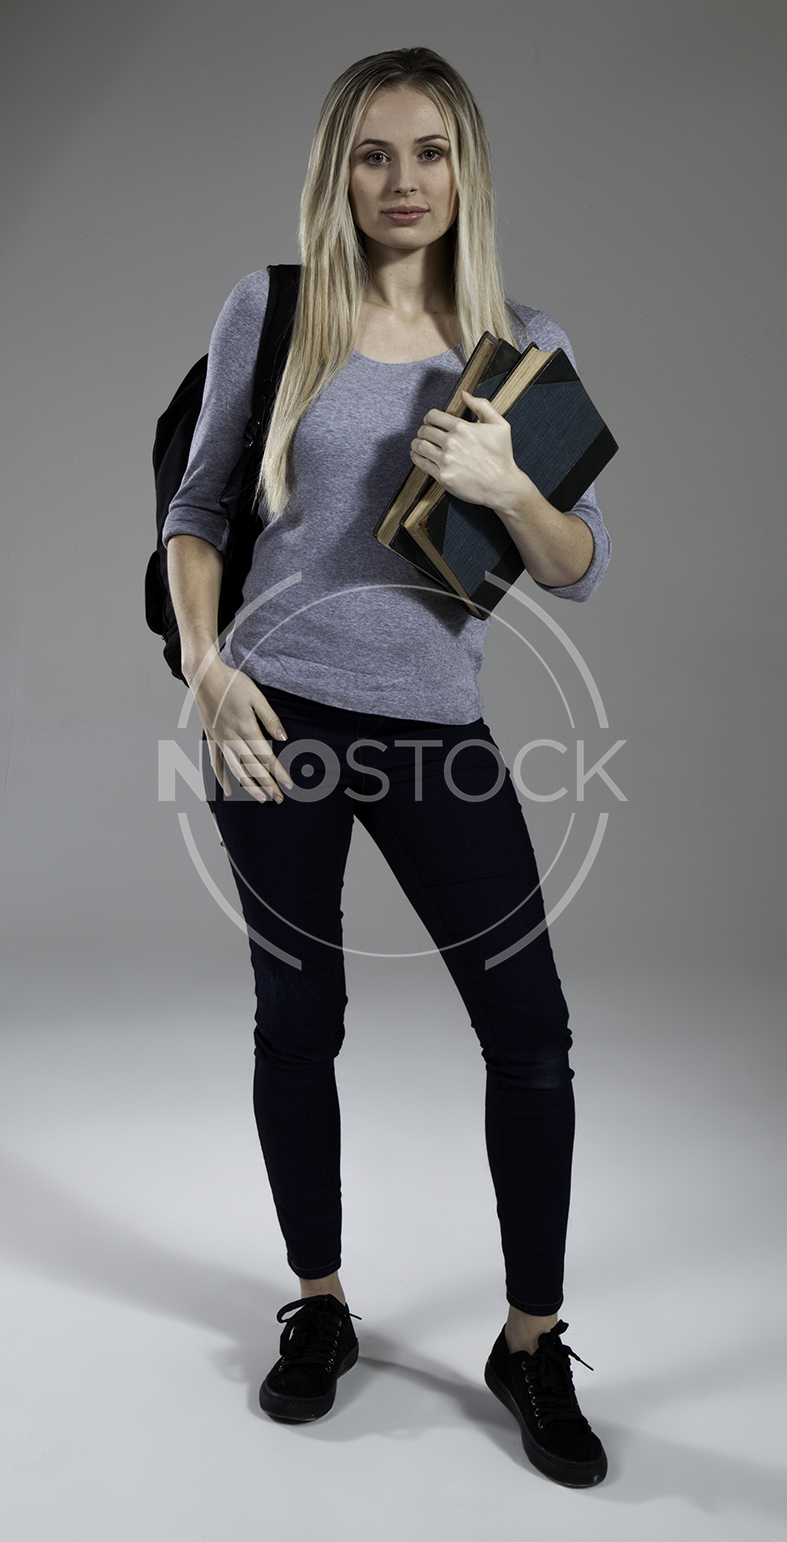 NeoStock - Billie Contemporary Casual - Stock Photography V